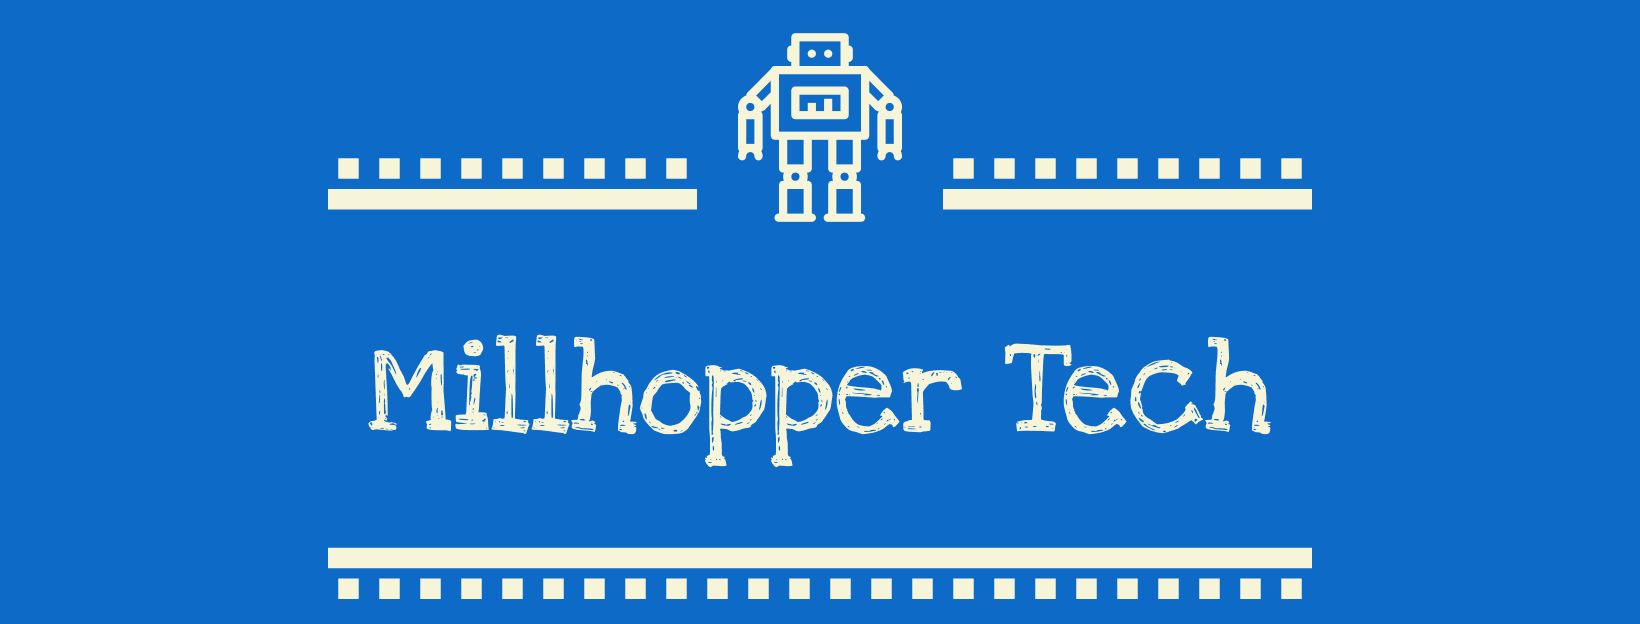 MILLHOPPER TECH